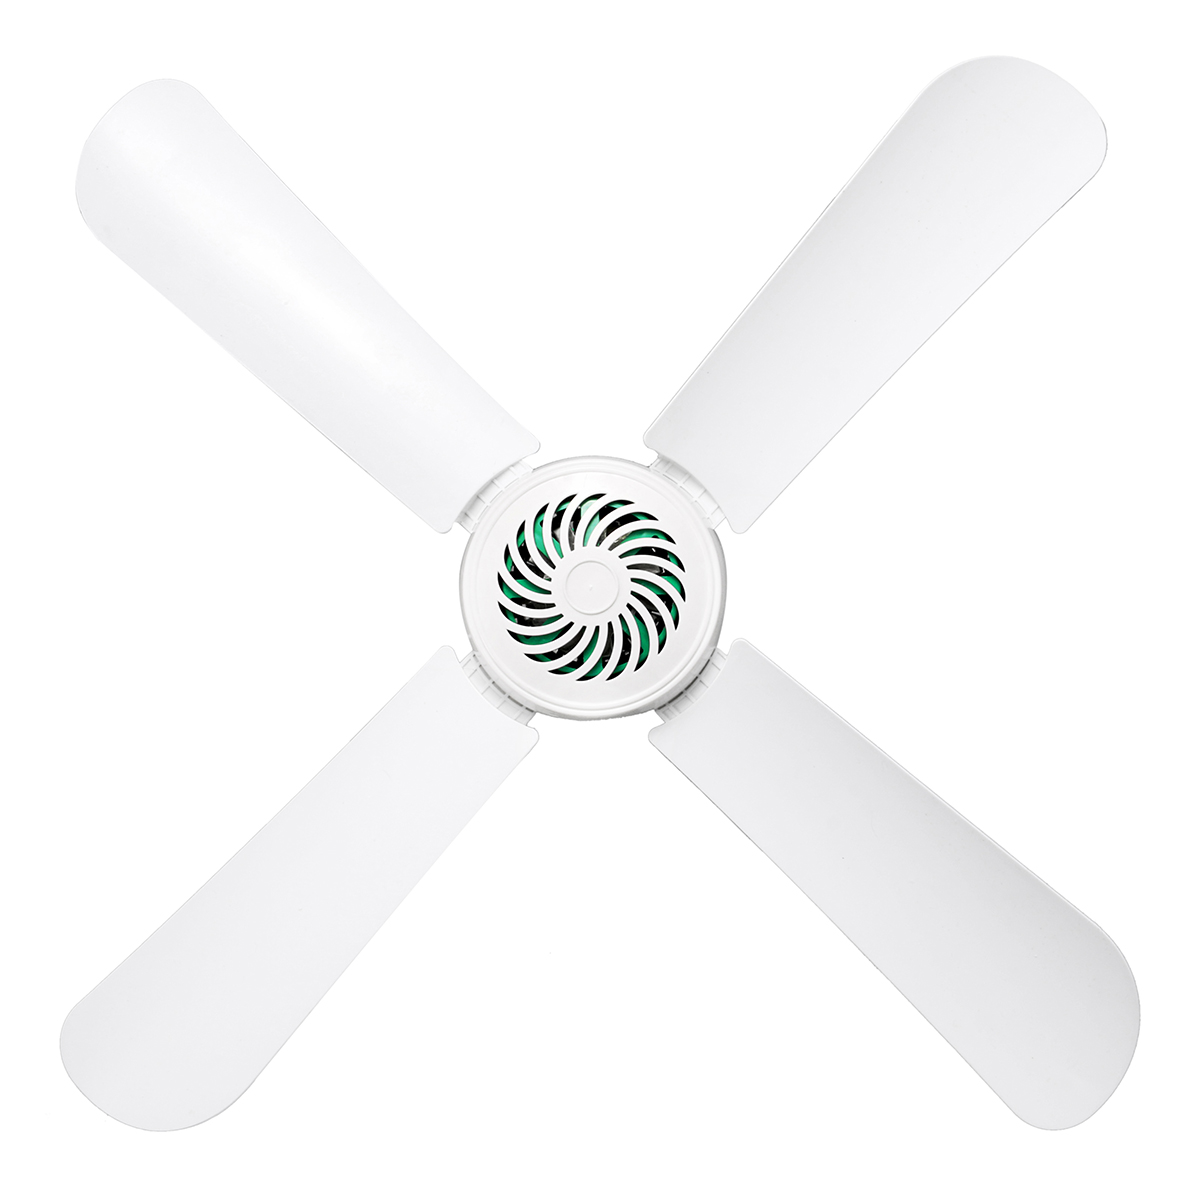 220V/250V AC 20W 4 Blades portable Mini Ceiling Fan Camping Home Indoor Hanging Summer Cooler Switch  With 1.5m Cable removable220V/250V AC 20W 4 Blades portable Mini Ceiling Fan Camping Home Indoor Hanging Summer Cooler Switch  With 1.5m Cable removable